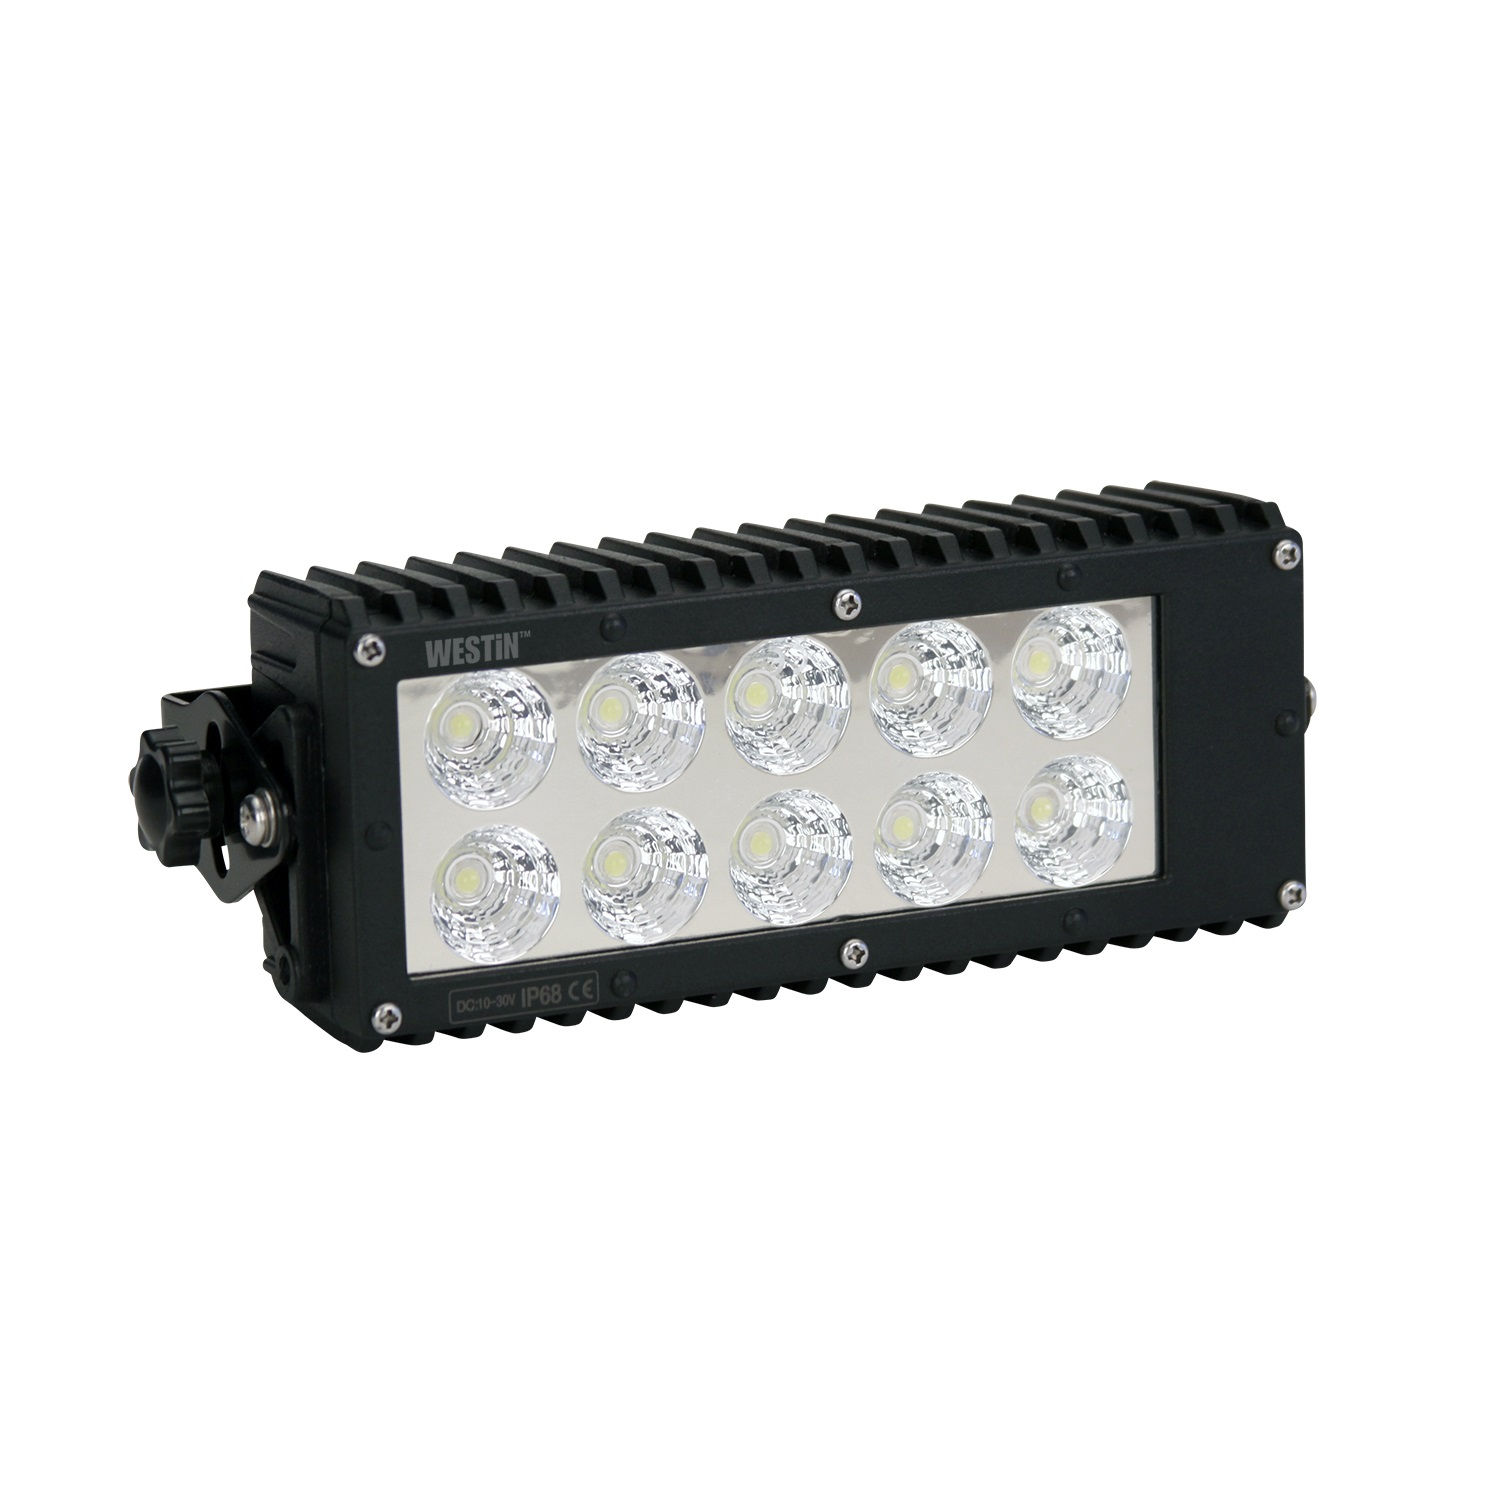 Westin 09-12214-30F LED Work Light Bar